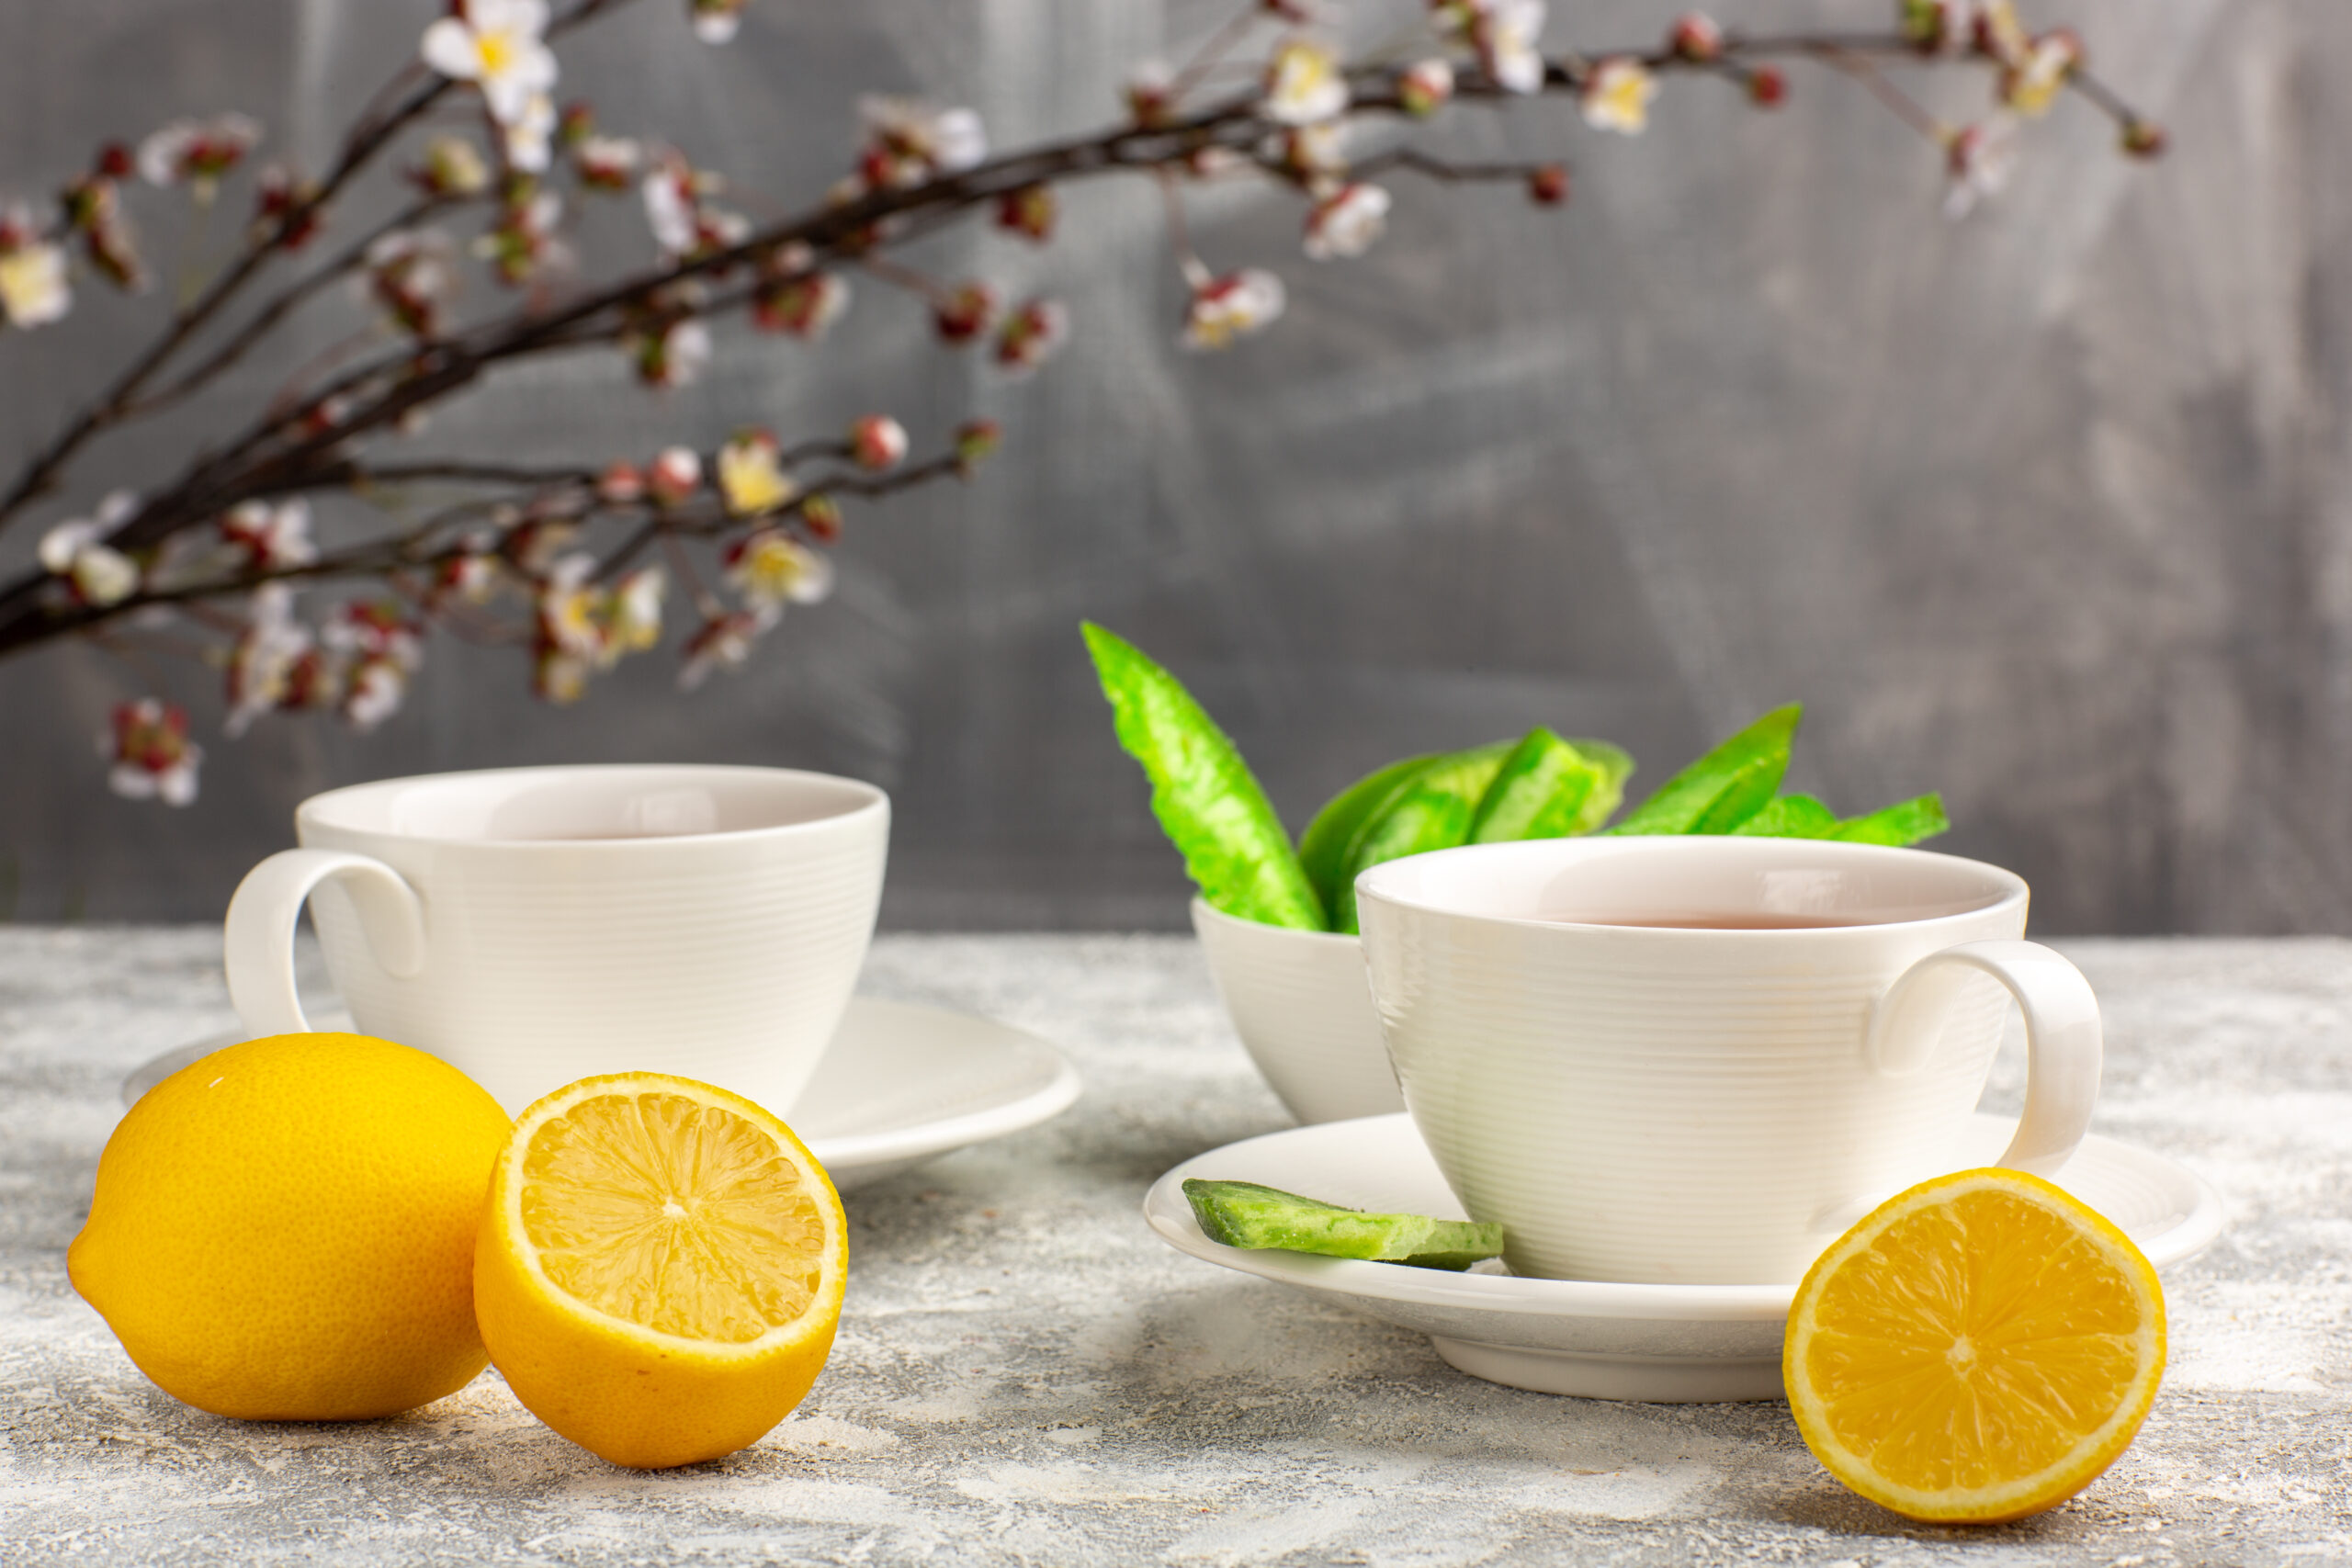 How To Make Lemon Green tea & Its Benefits